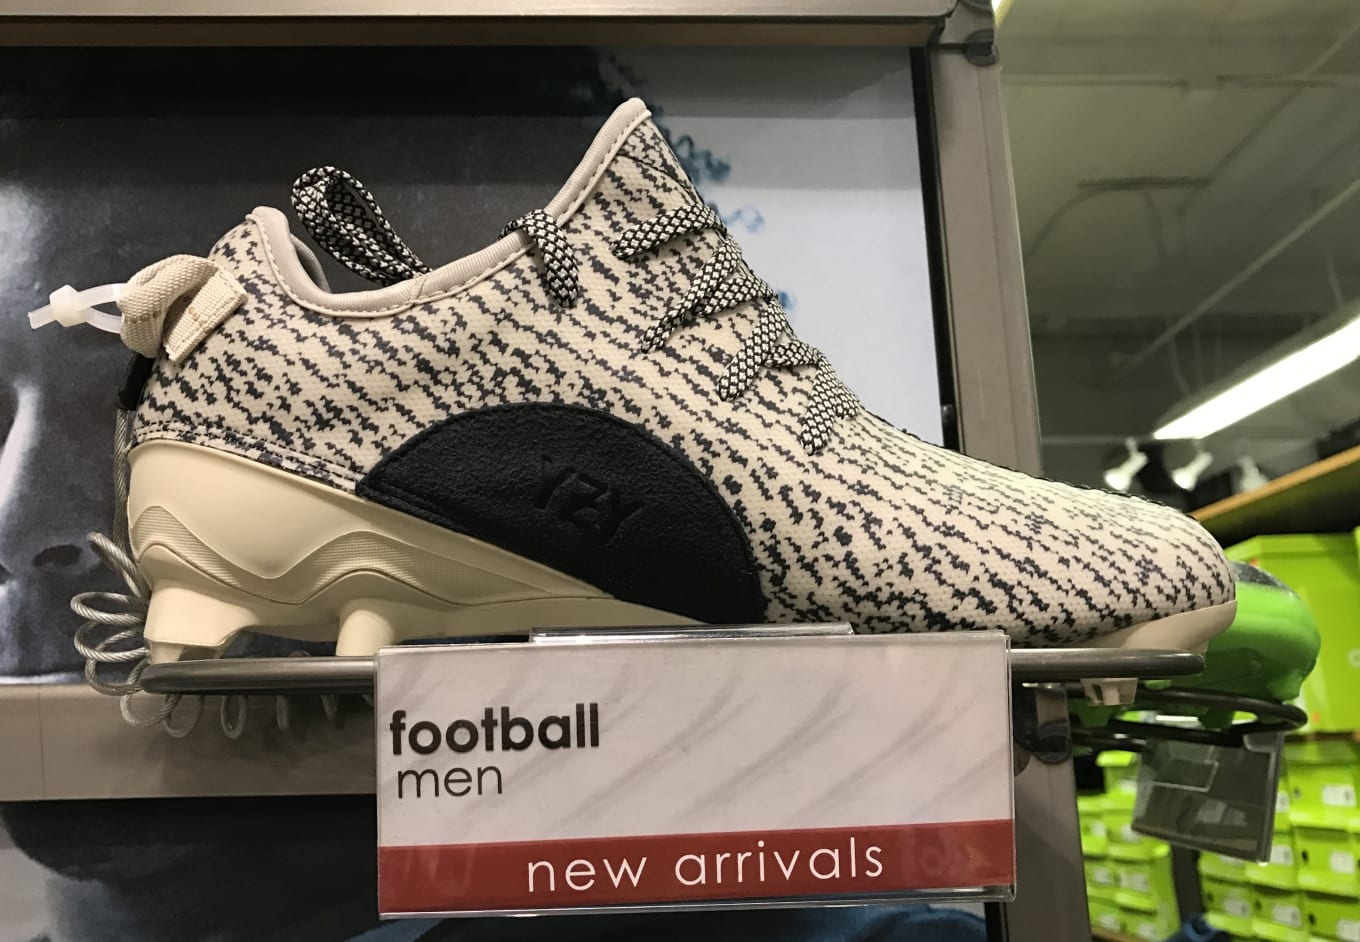 d64aa391c4c Adidas Yeezy Cleats Spotted at Outlet